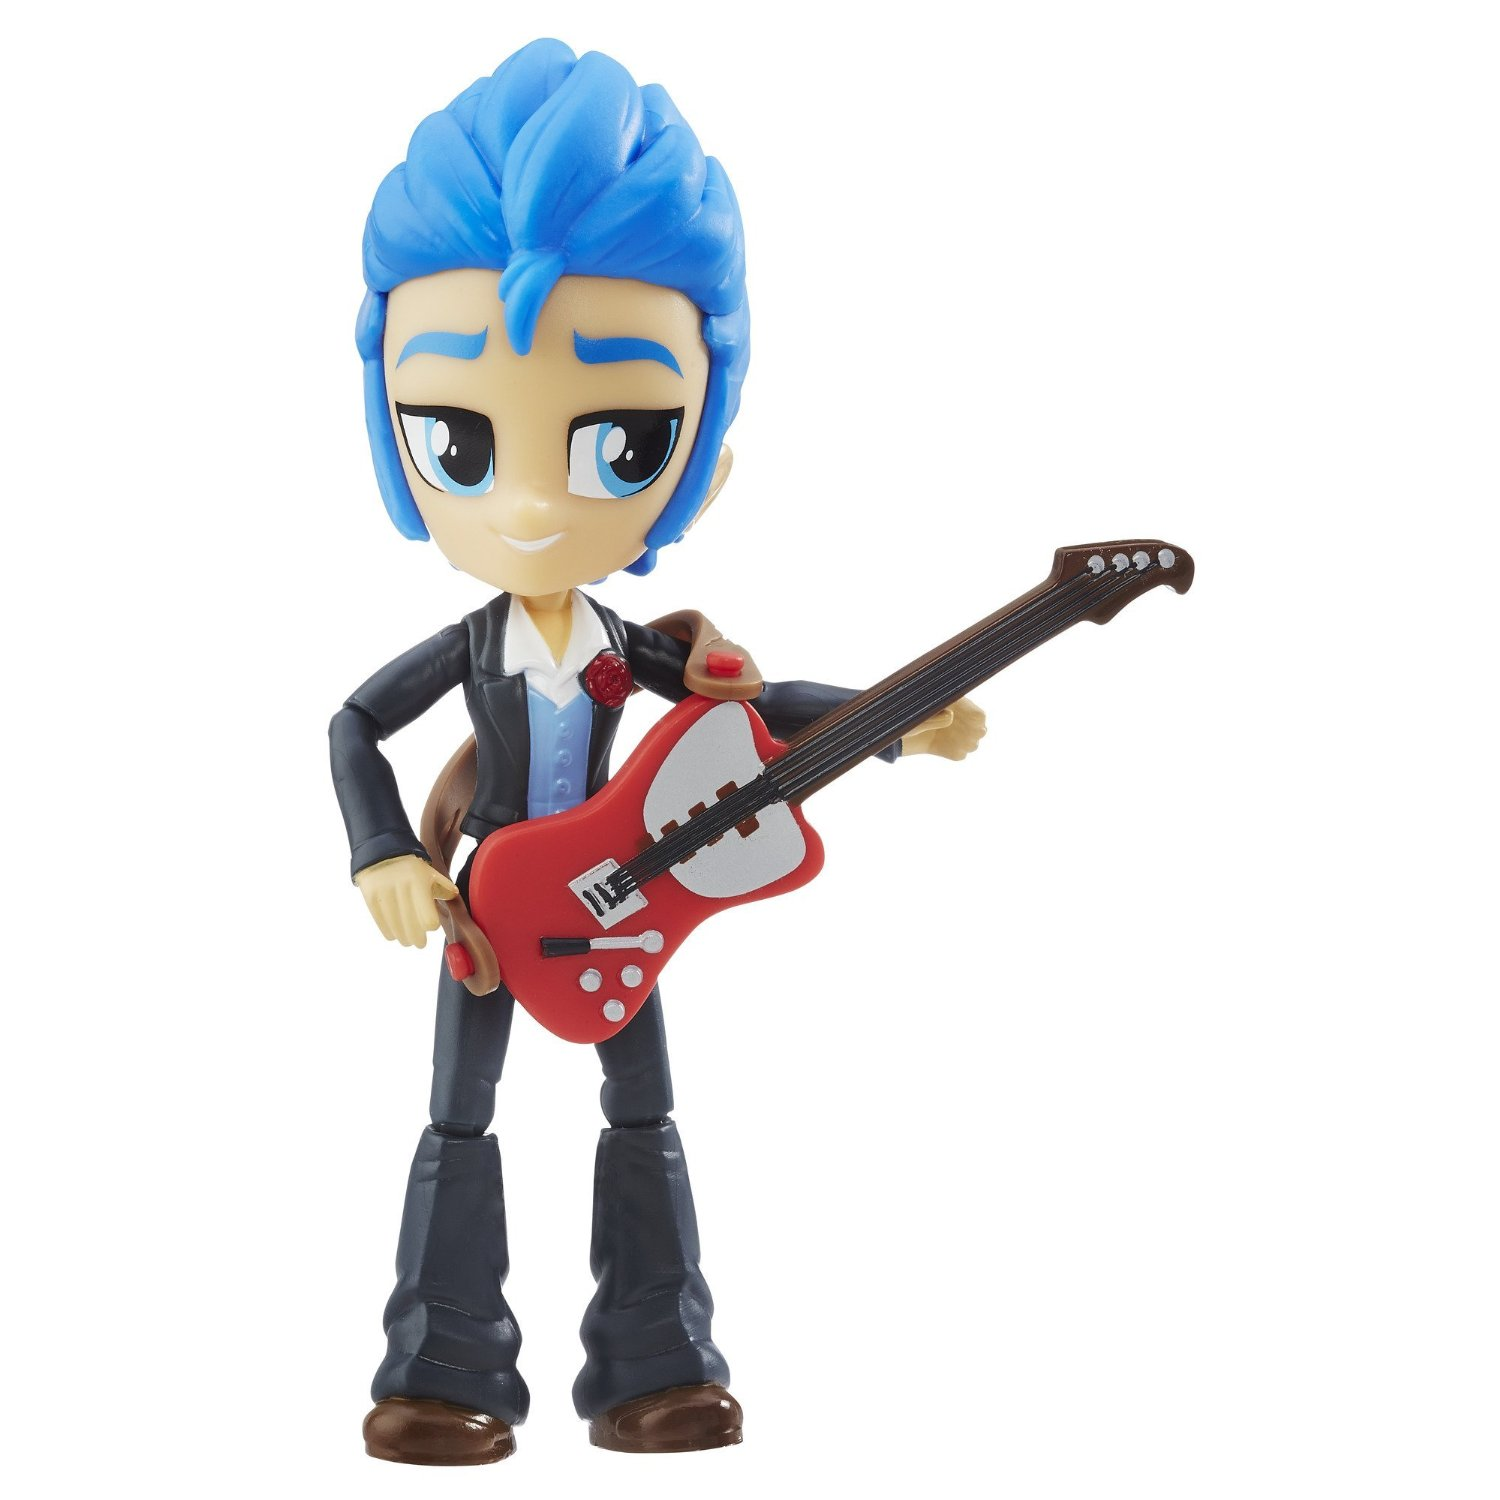 mlp flash sentry fall formal equestria girls mini single